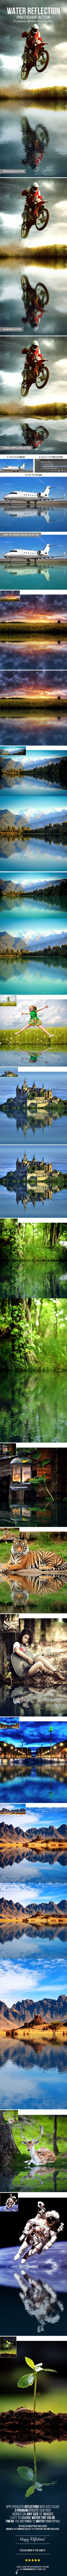 3-in-1 Water Reflection Photoshop Action. Download here: https://graphicriver.net/item/3in1-water-reflection-photoshop-action/16990697?ref=ksioks